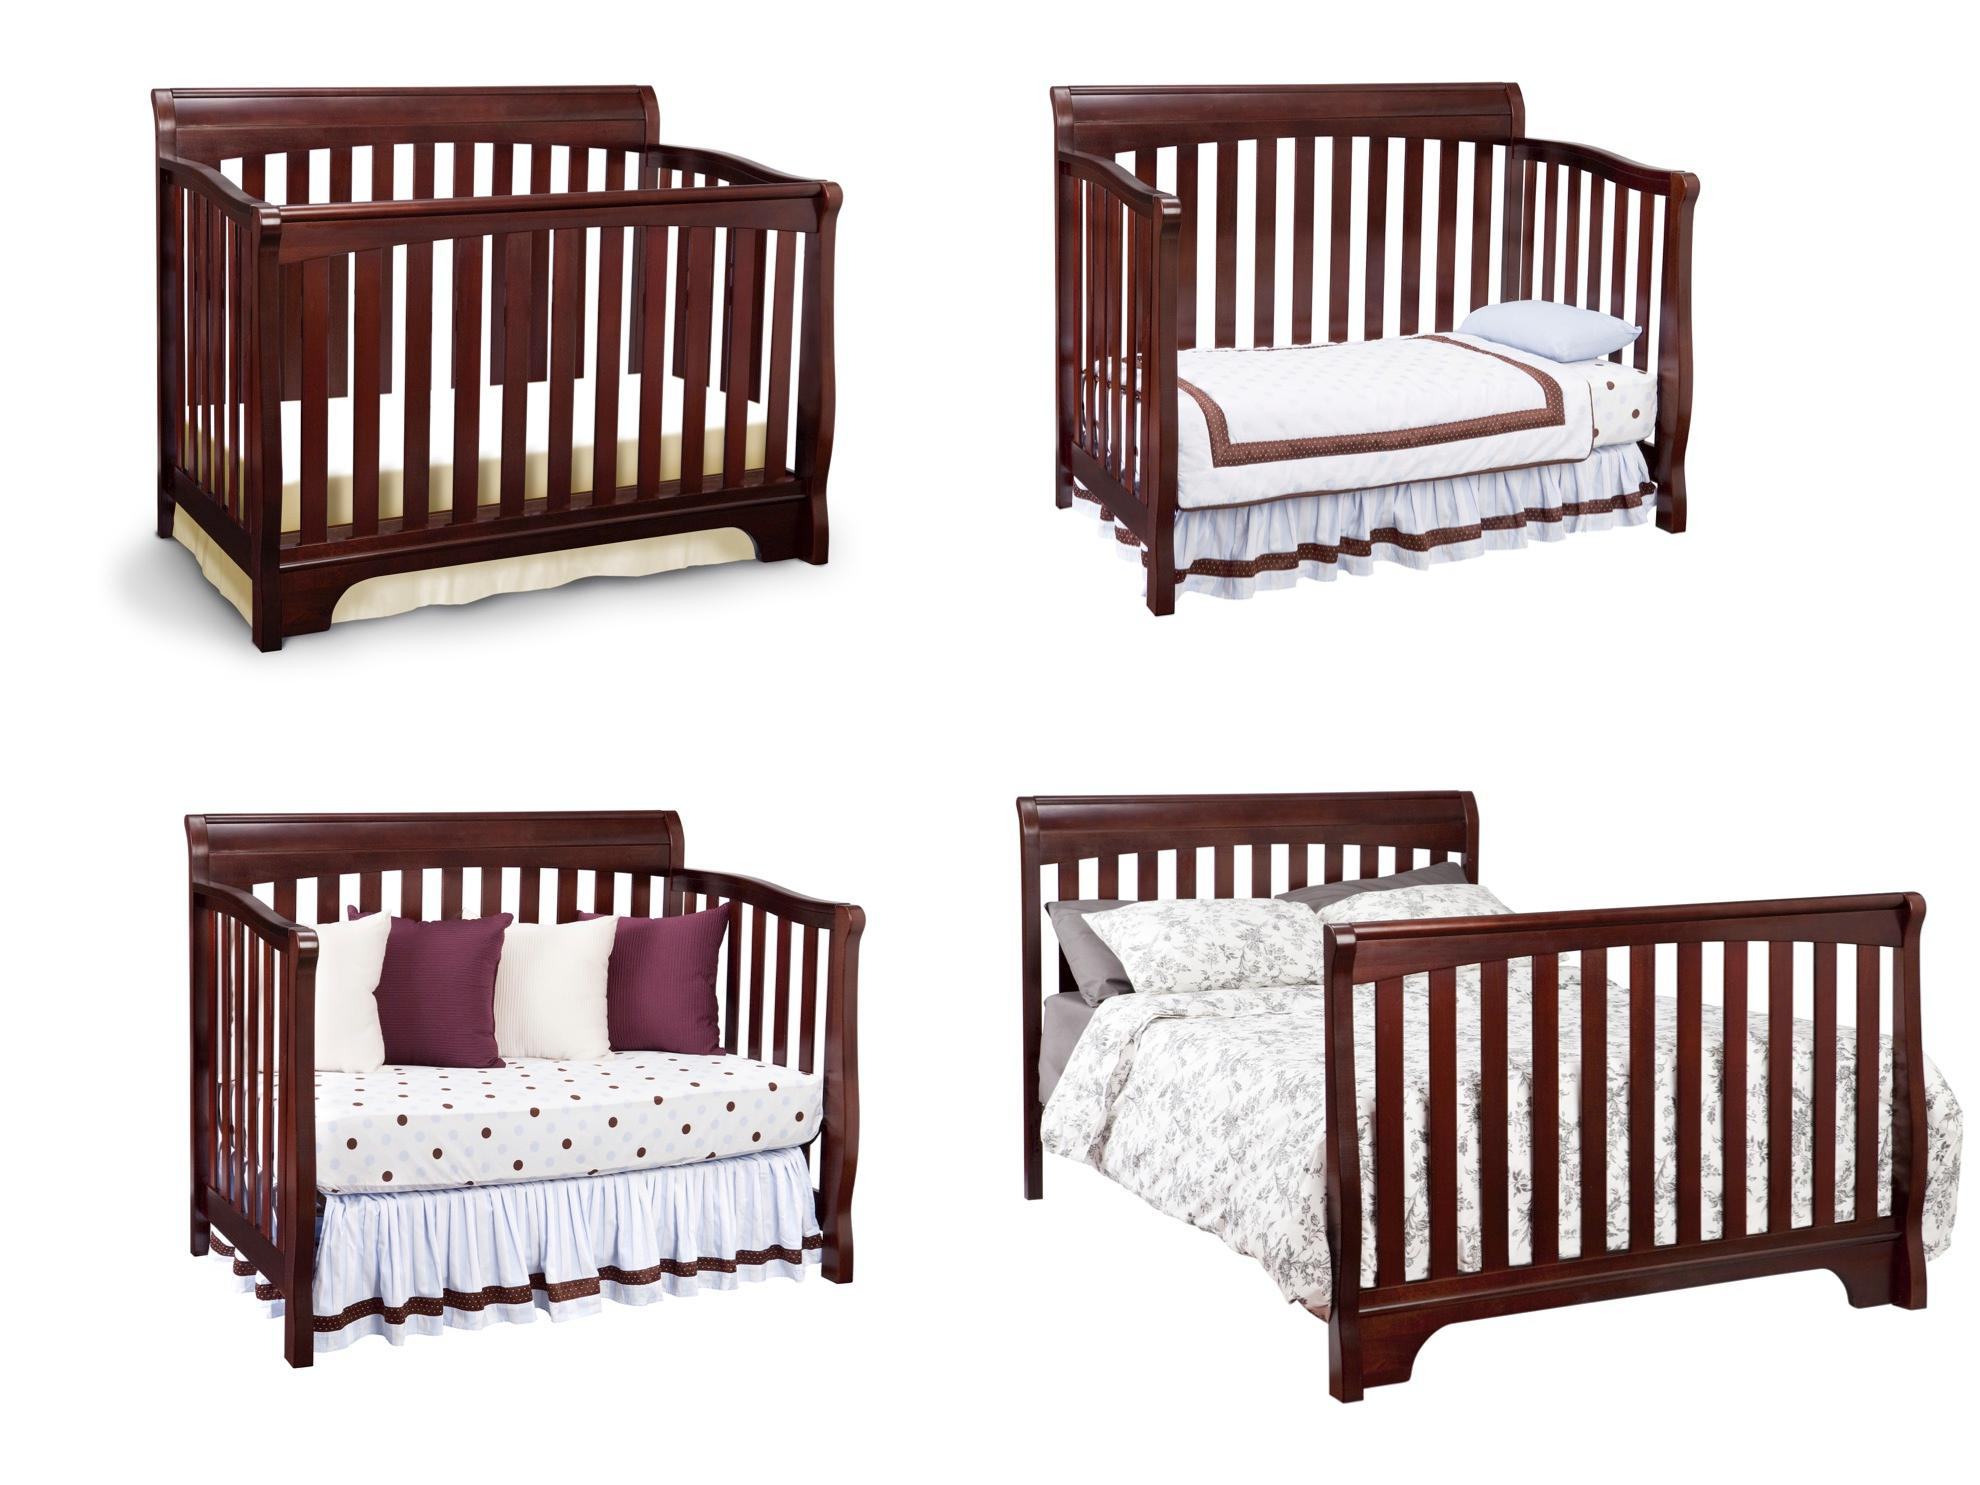 s in crib attractive photo parkside convertible cribs design x white of delta inspirations children angled att